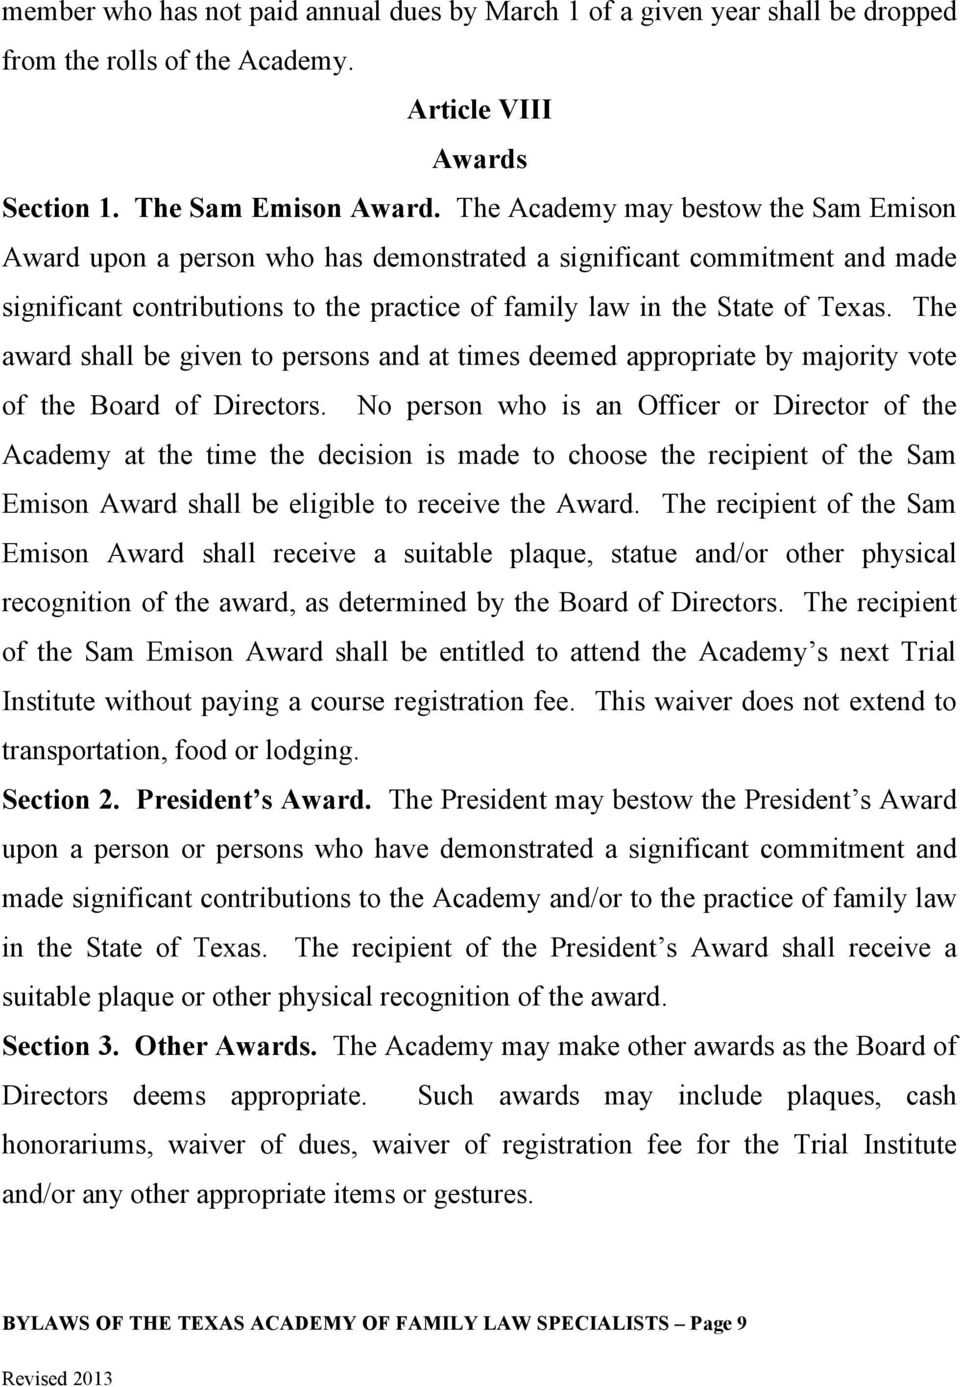 The award shall be given to persons and at times deemed appropriate by majority vote of the Board of Directors.